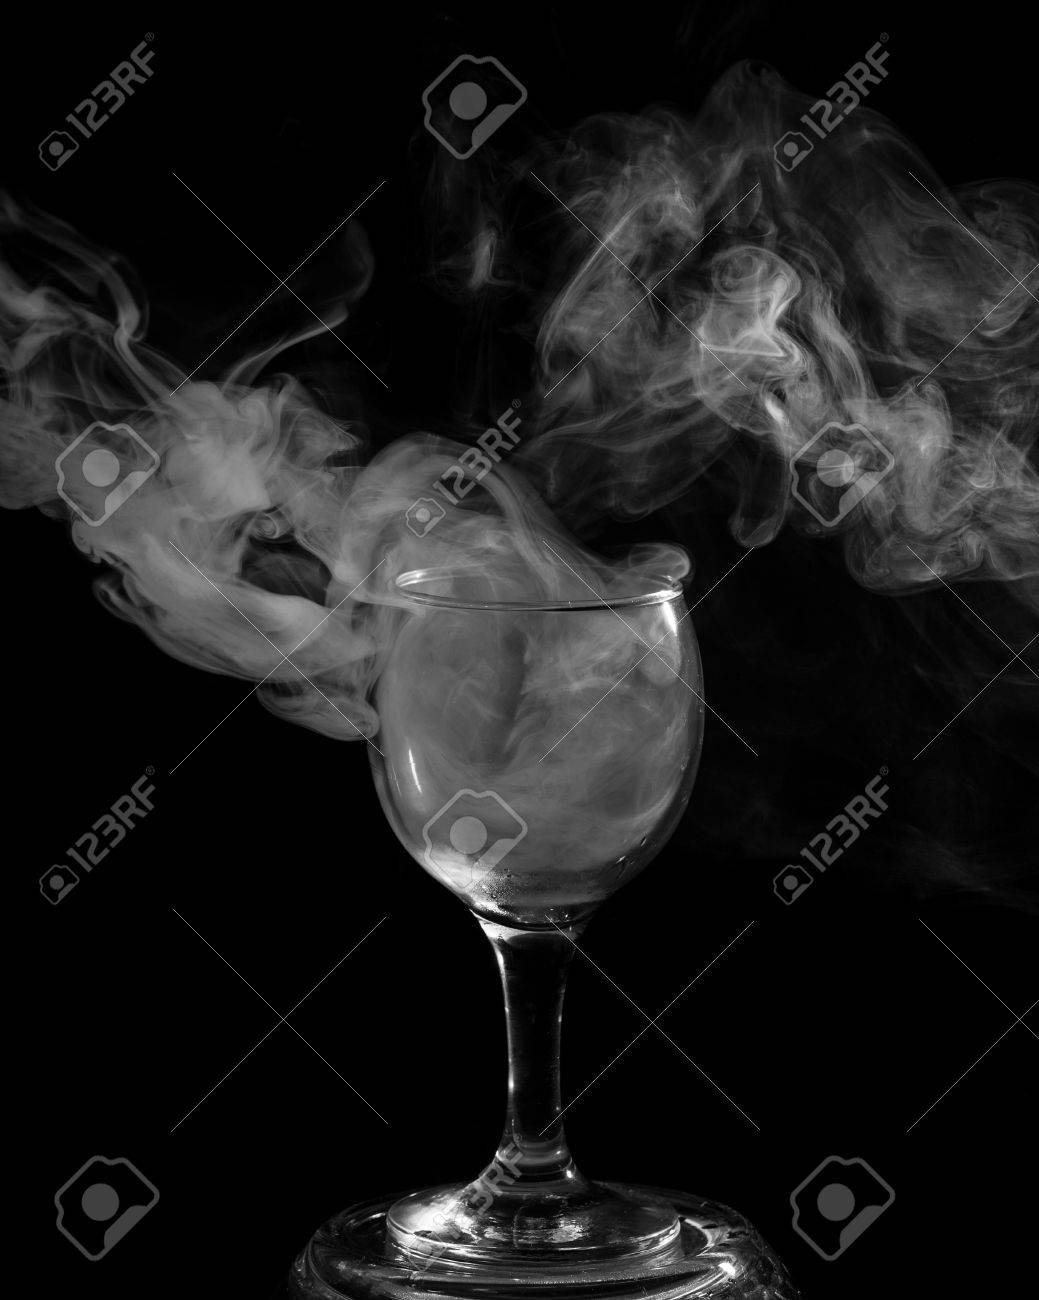 Abstract art  Hookah smoke into cocktail glass on a black background